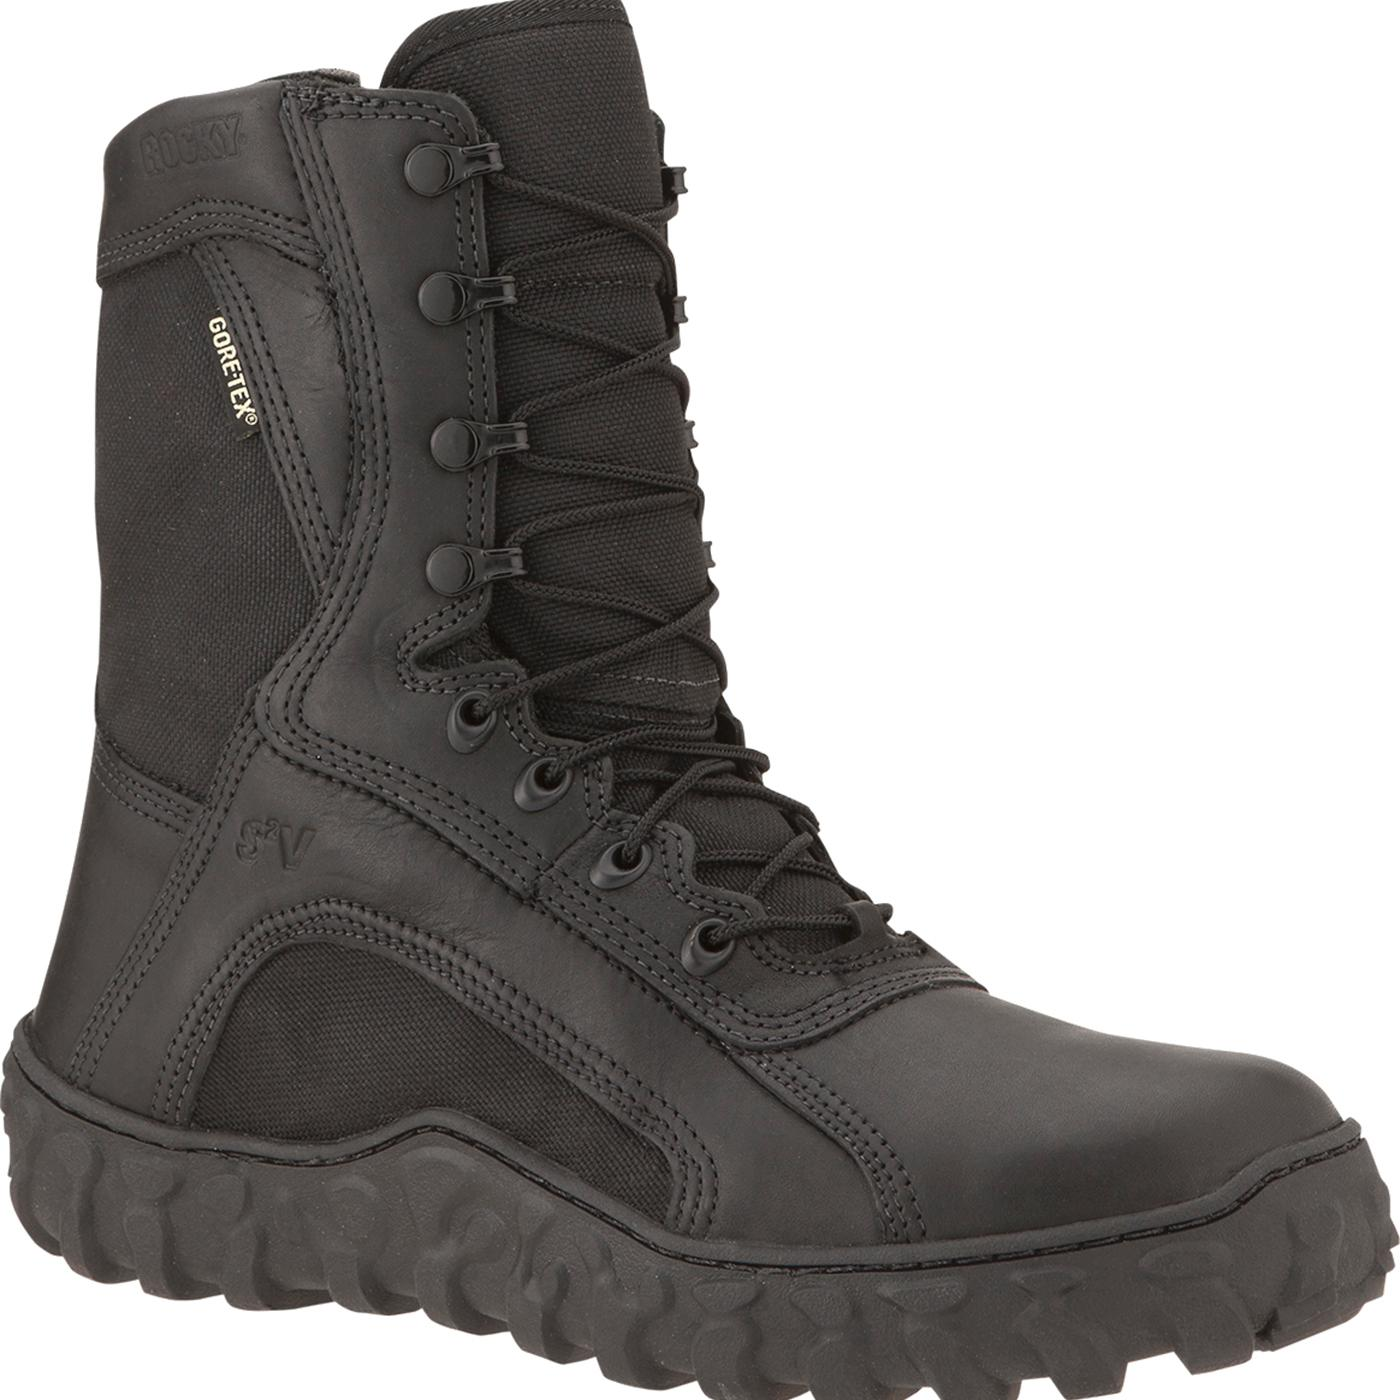 18535cffeb7 Rocky S2V GORE-TEX® Waterproof Tactical Military Boot